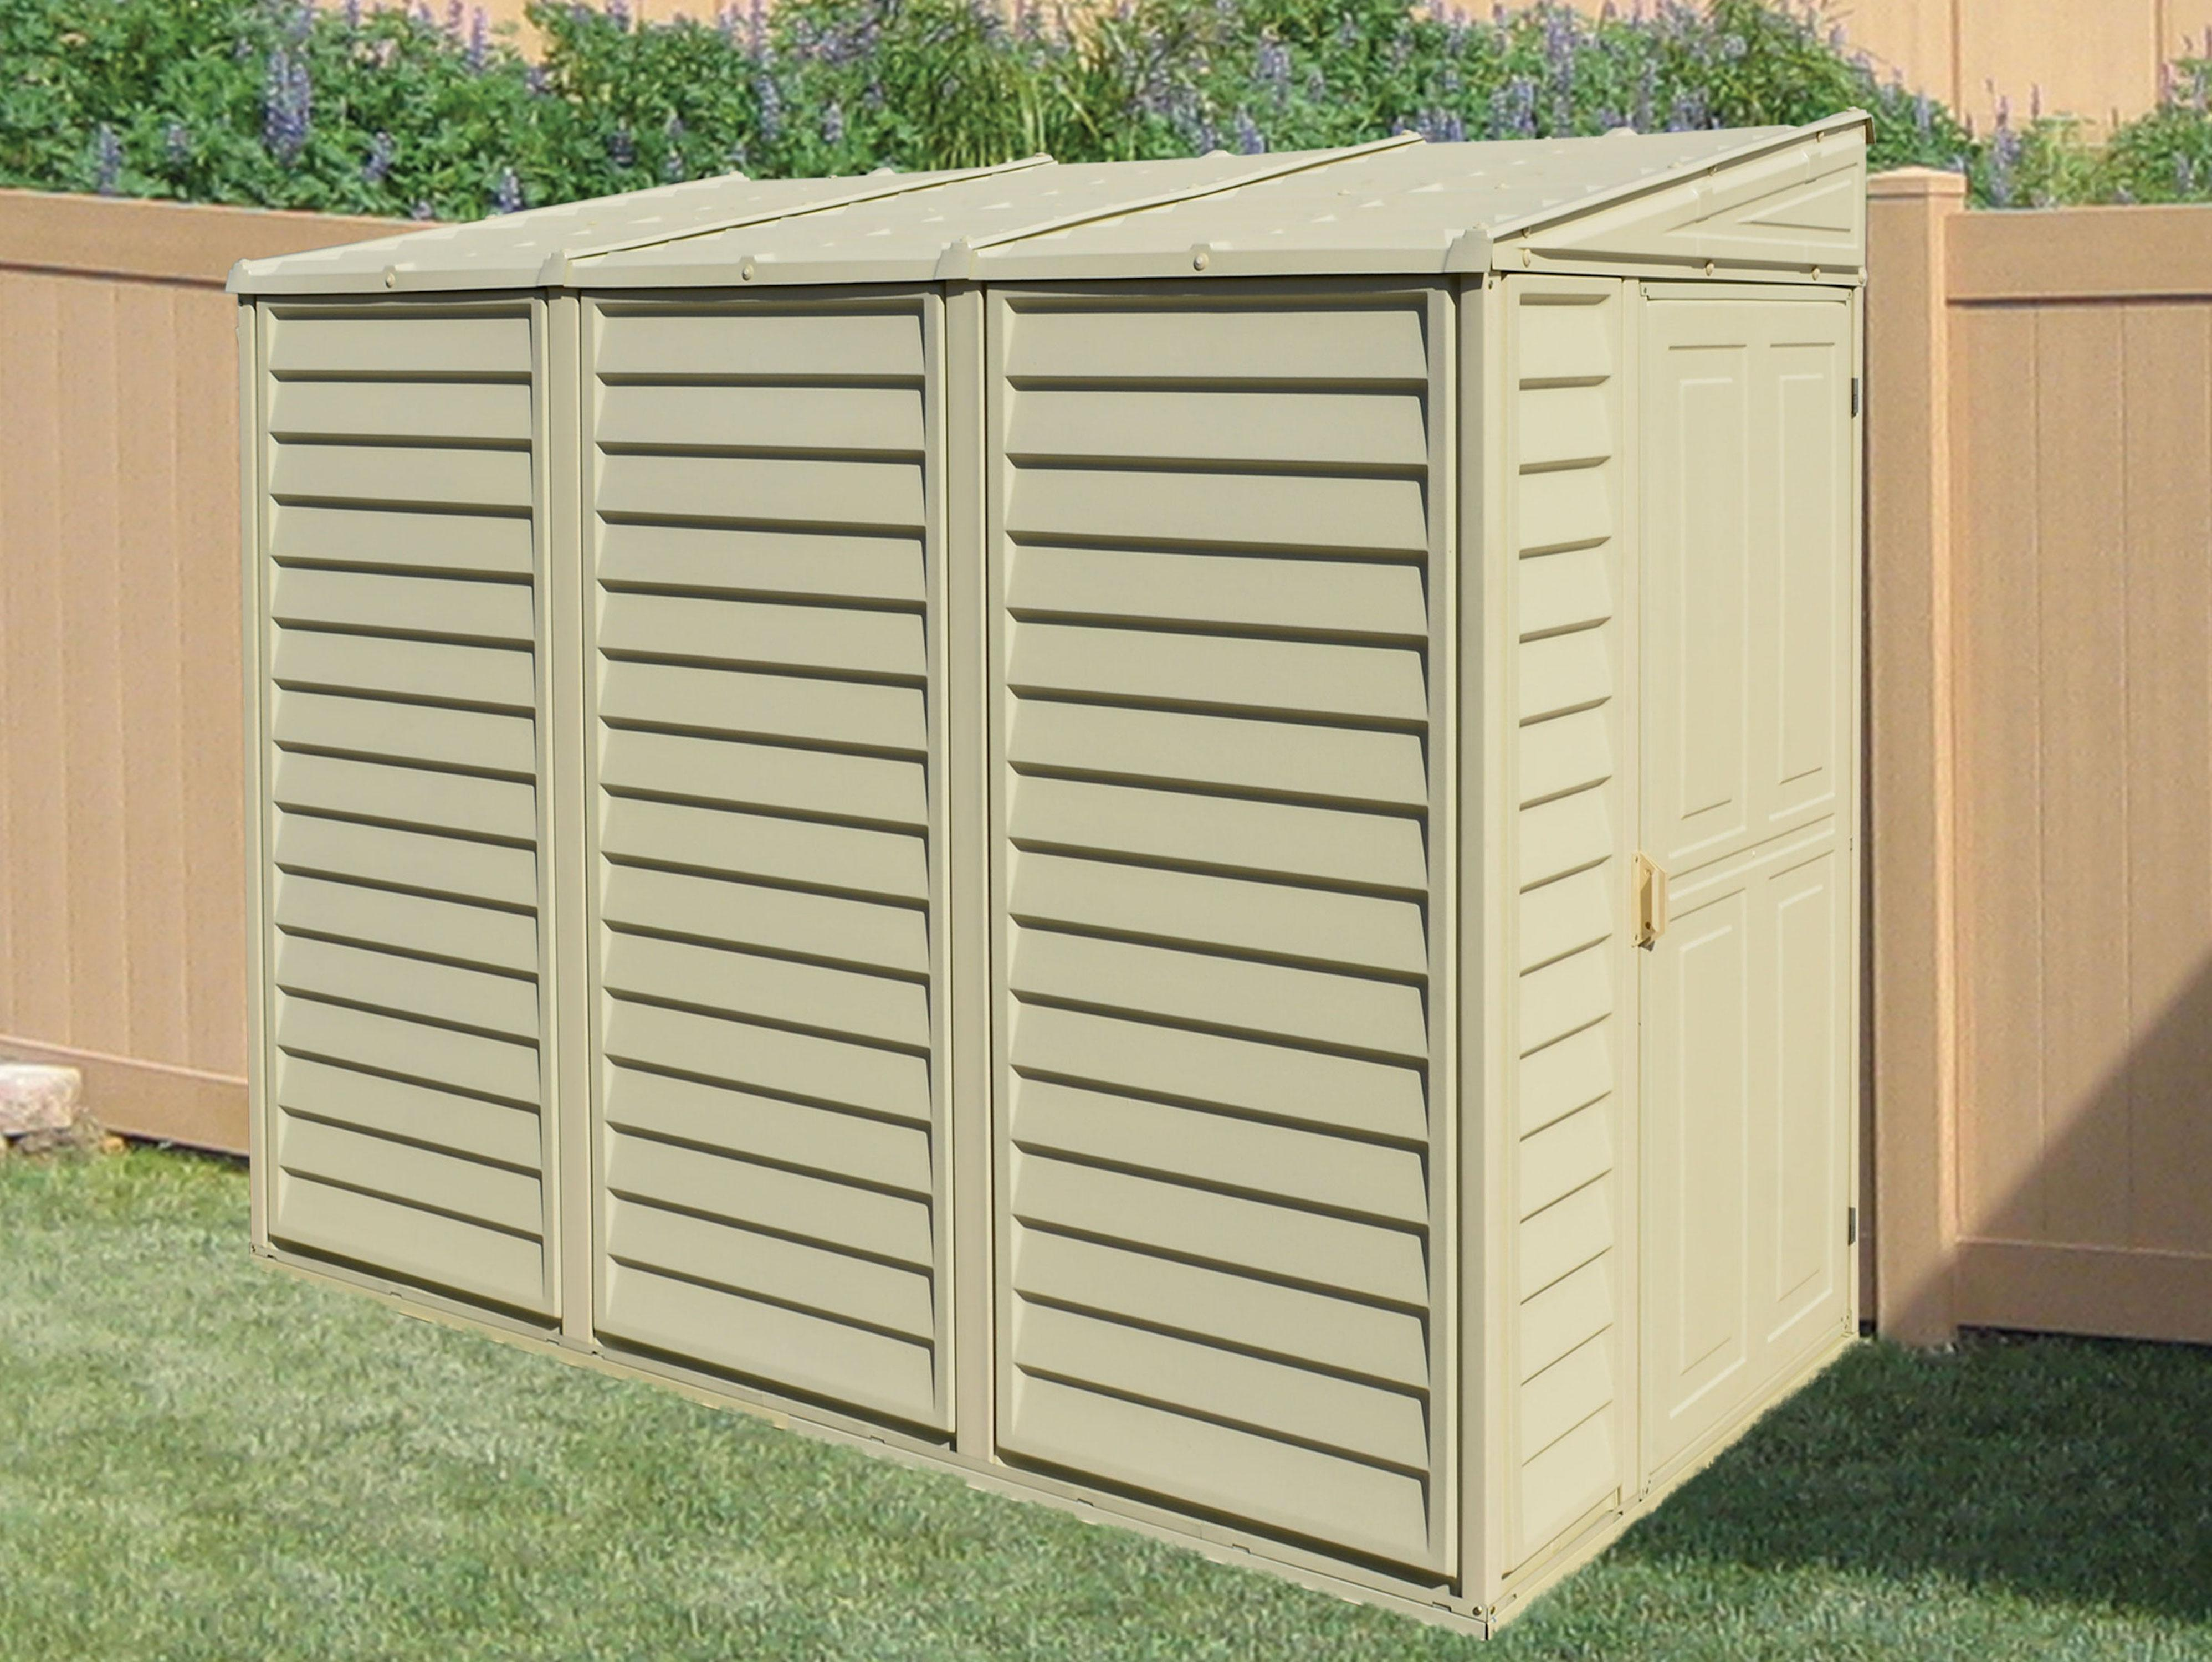 stores greenhouse lifetime sheds shed duramax